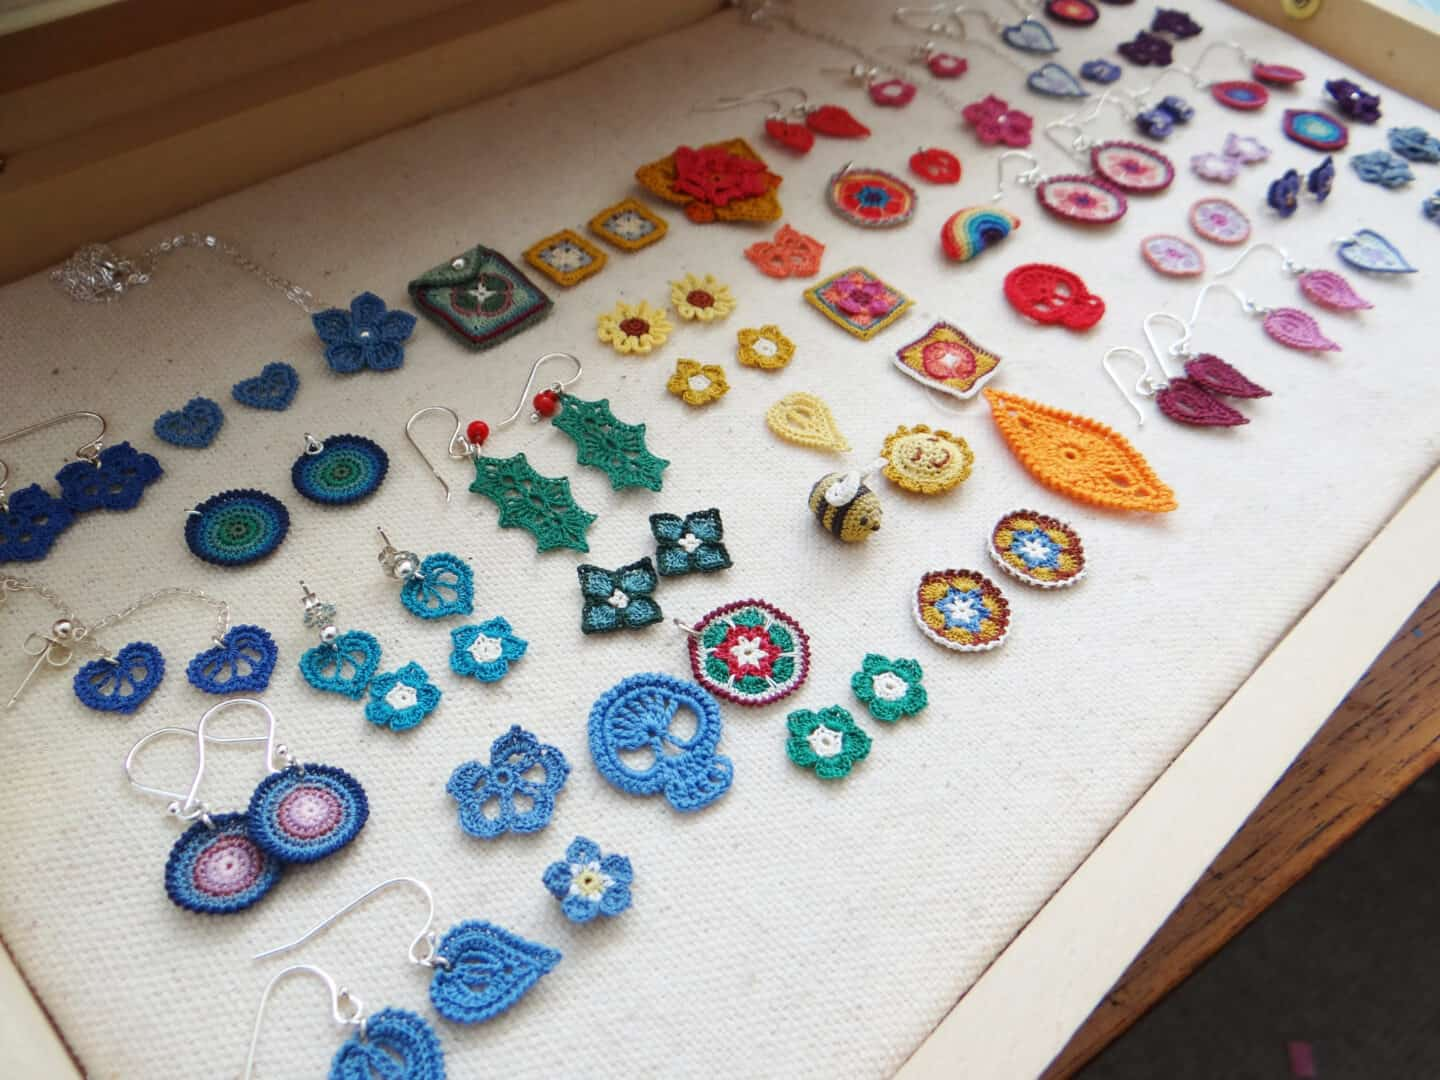 micro crochet earrings and motifs laid out in wooden presentation box, including holly leaves, granny squares, tiny flowers, skulls, bumble bees and more